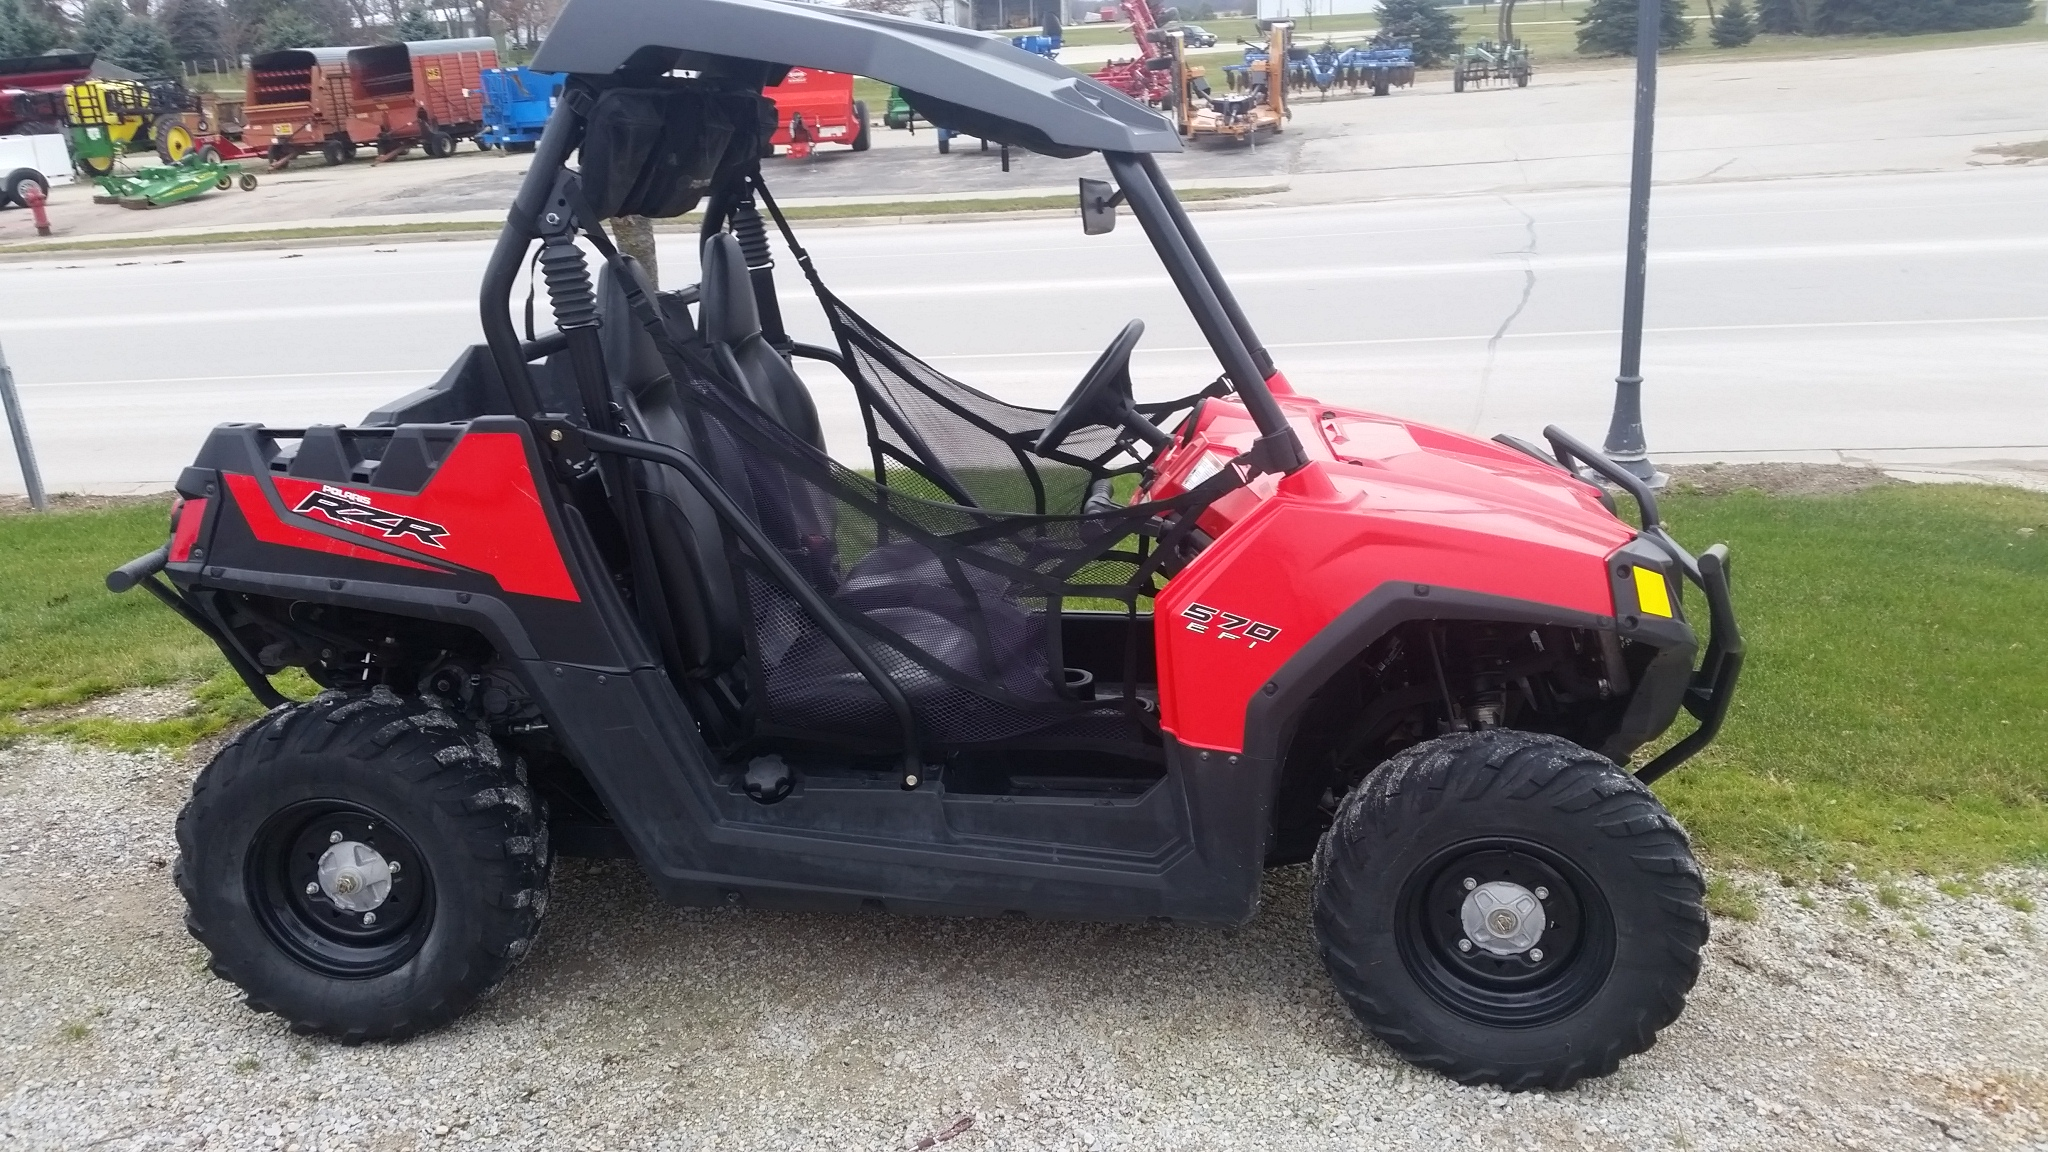 2013 Polaris RZR 570 Utility Vehicle for sale in Chatfield